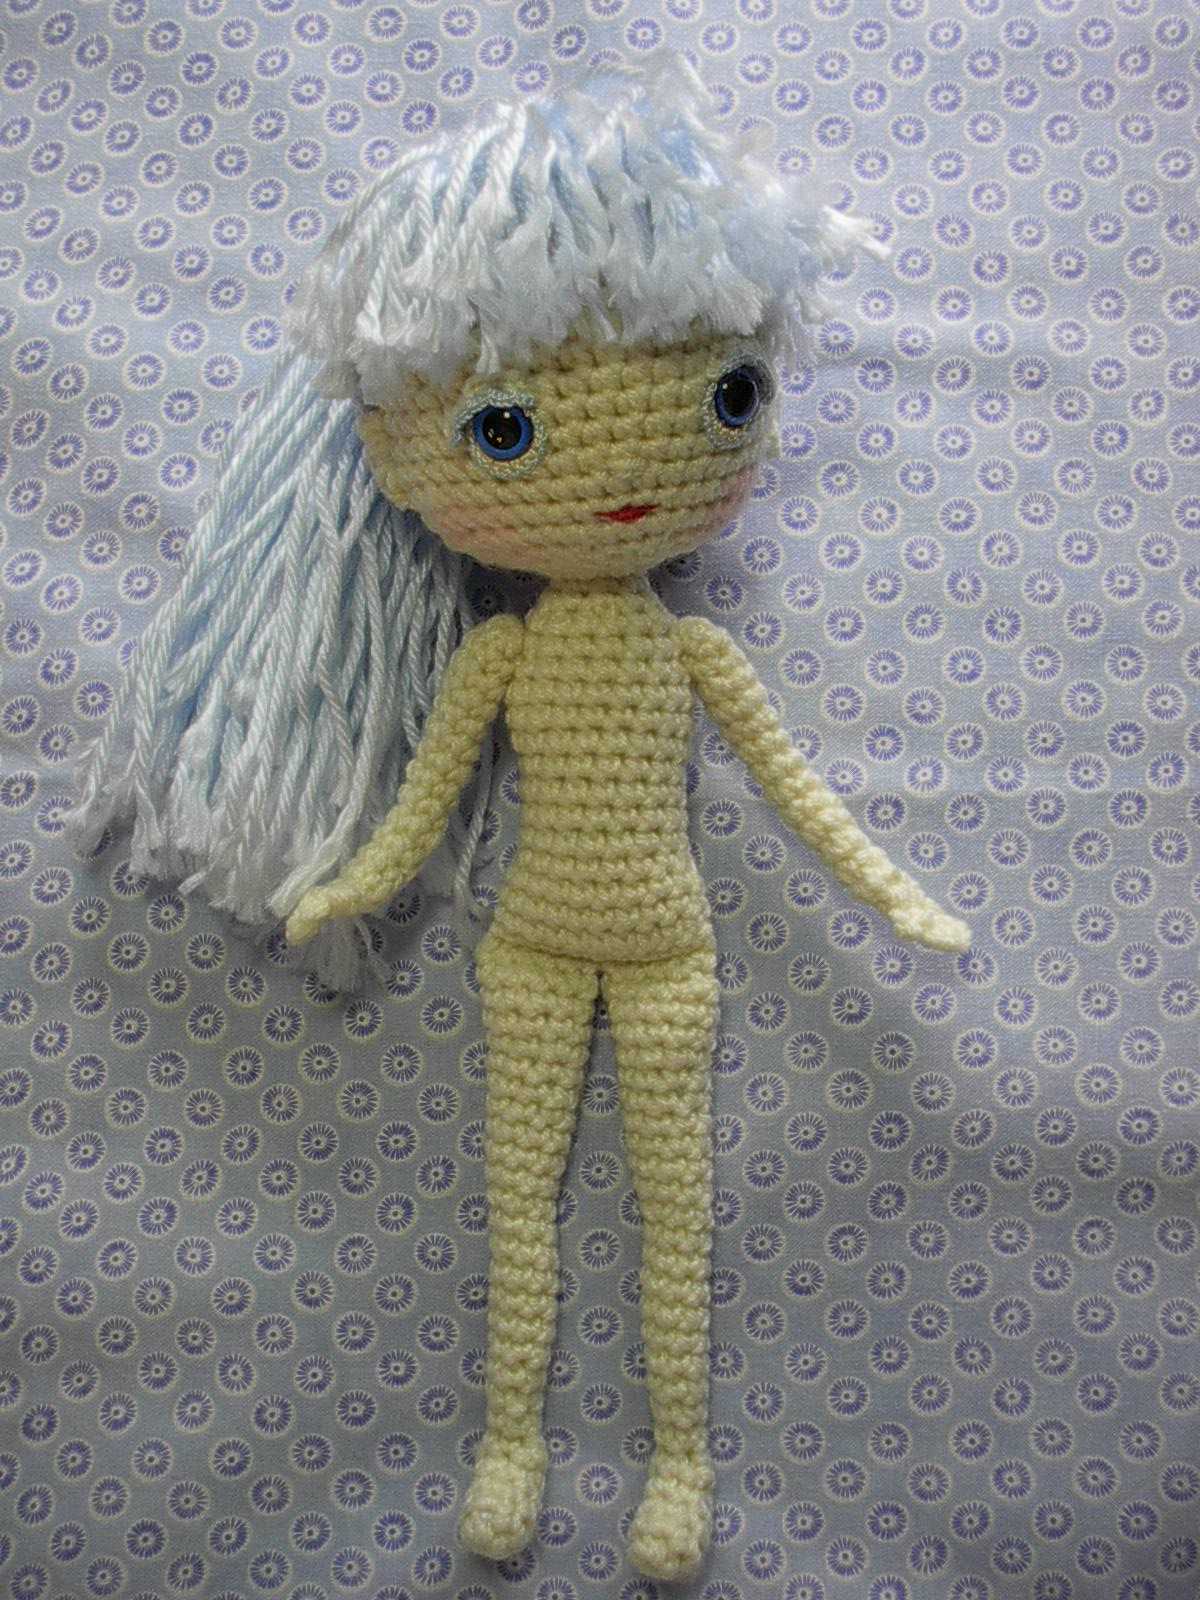 2000 free amigurumi patterns human doll look at this lovely doll really a great design for a human doll click here for the free crochet pattern and more photos dt1010fo